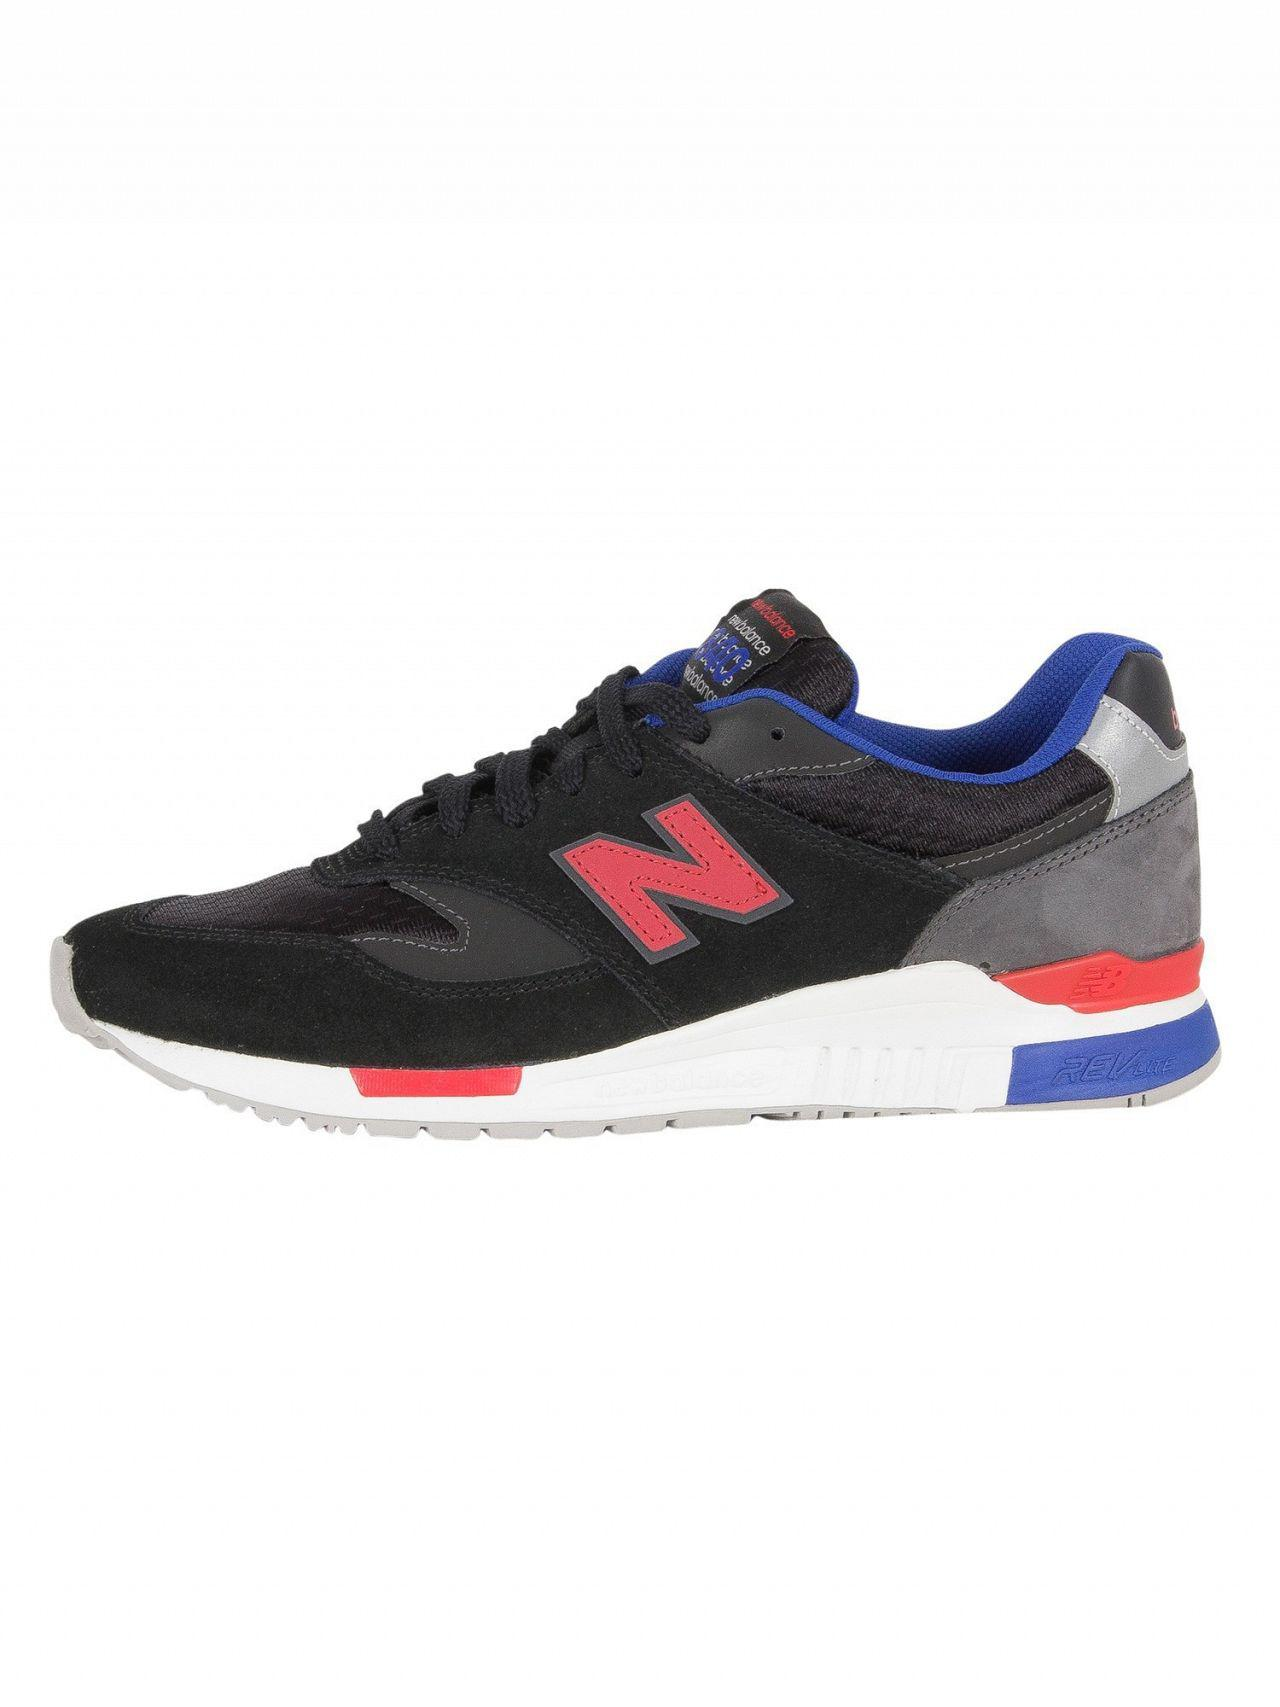 New Balance - Black magnet 840 Suede Trainers for Men - Lyst. View  fullscreen a49273cc1b53